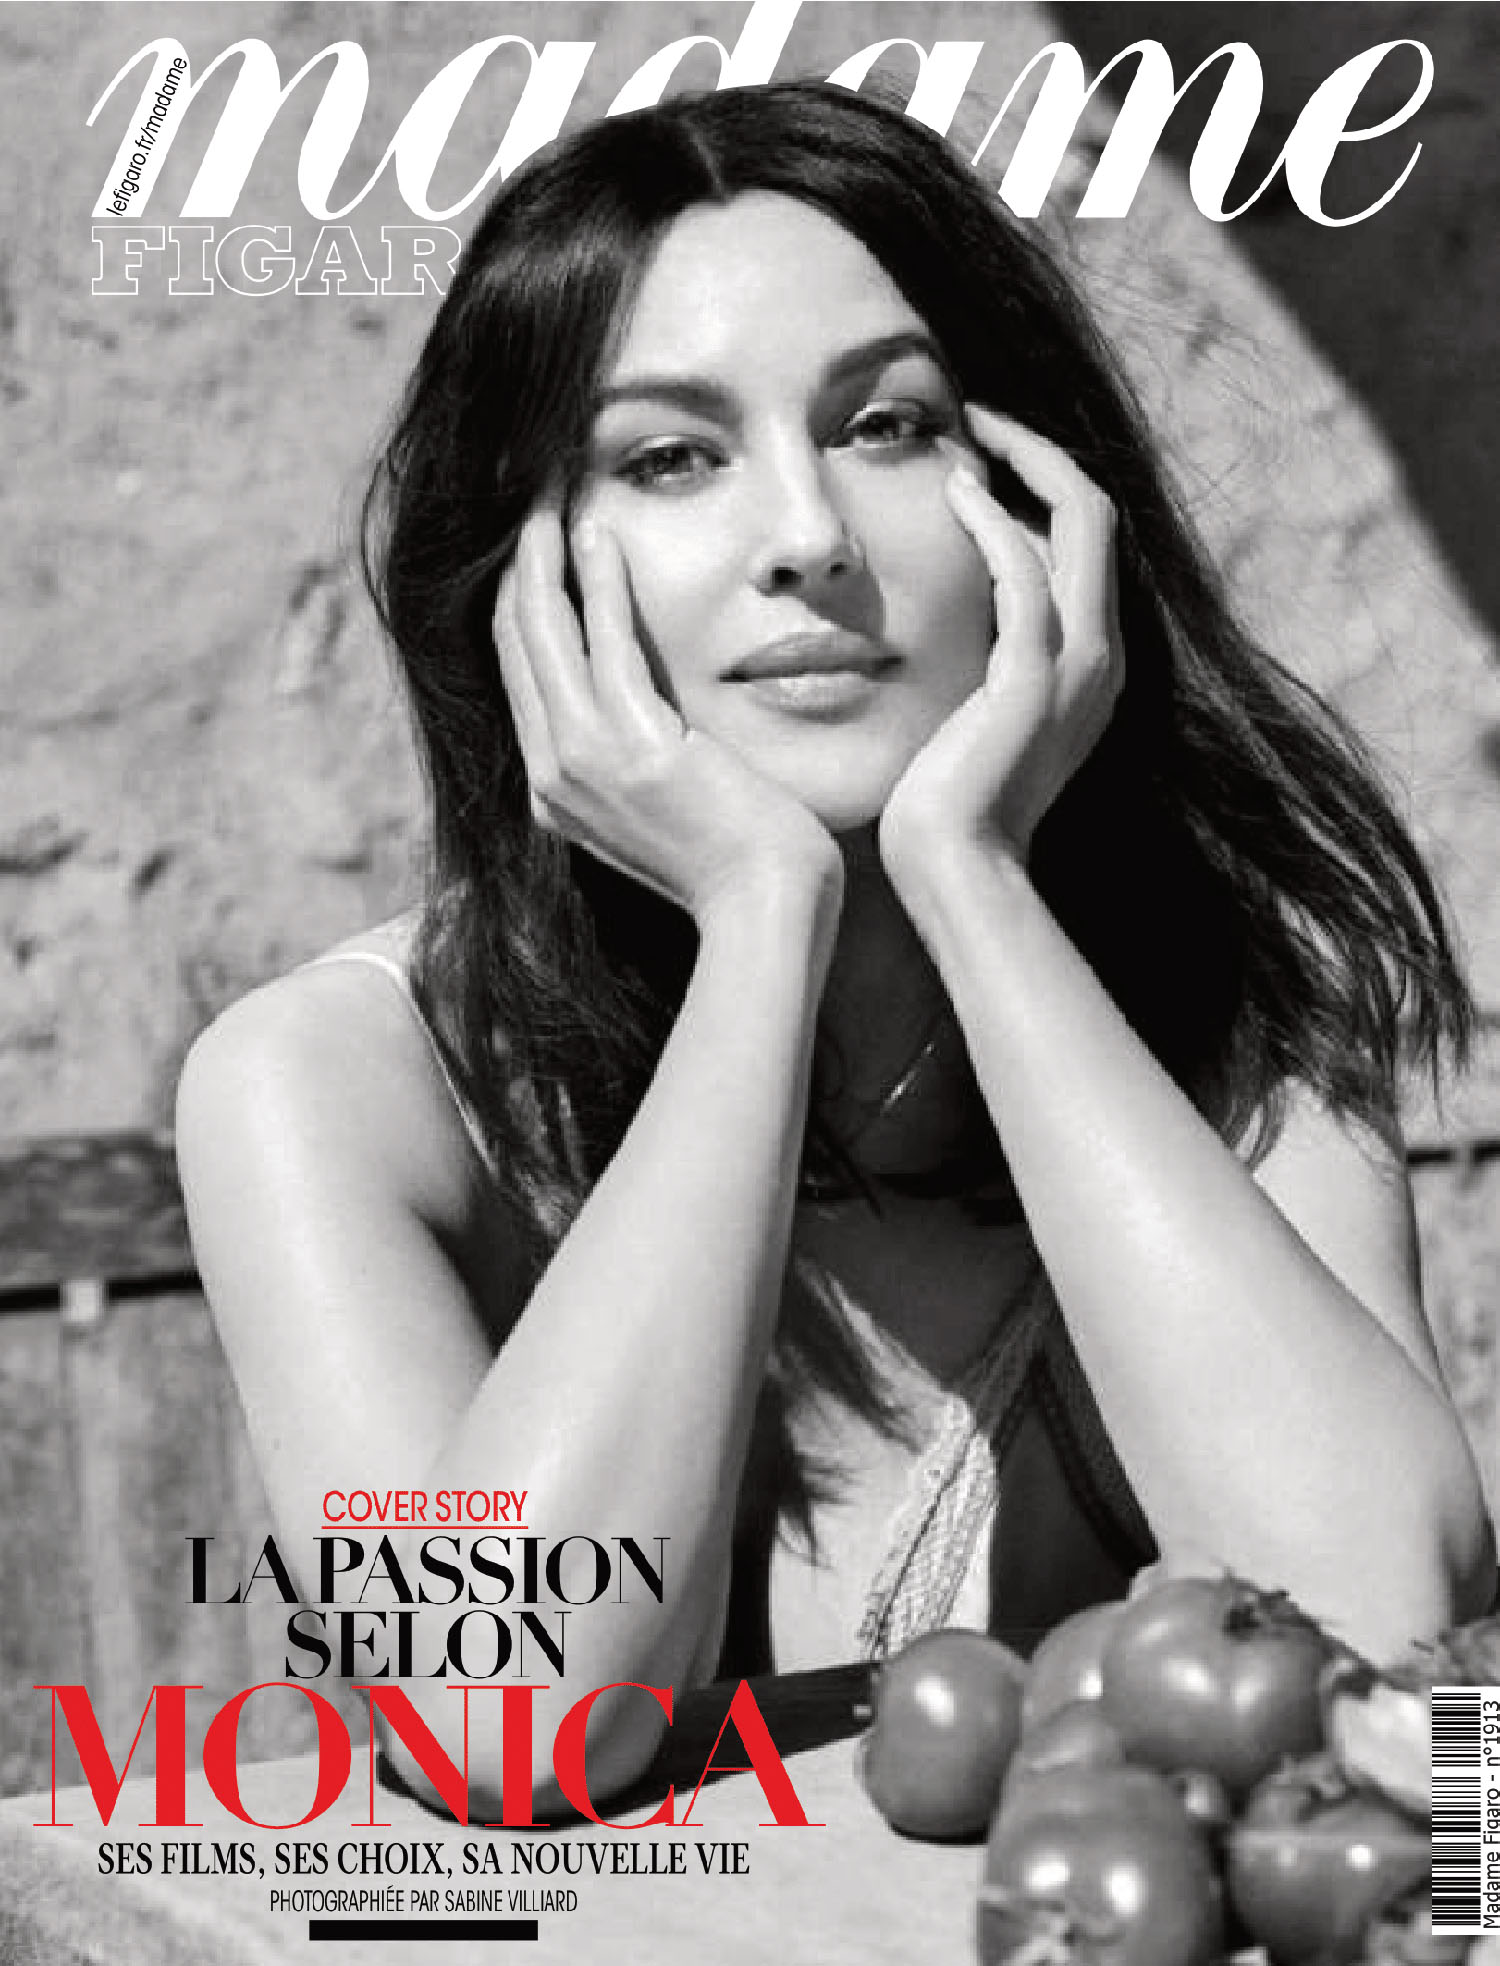 Monica Bellucci covers Madame Figaro April 23rd, 2021 by Sabine Villiard